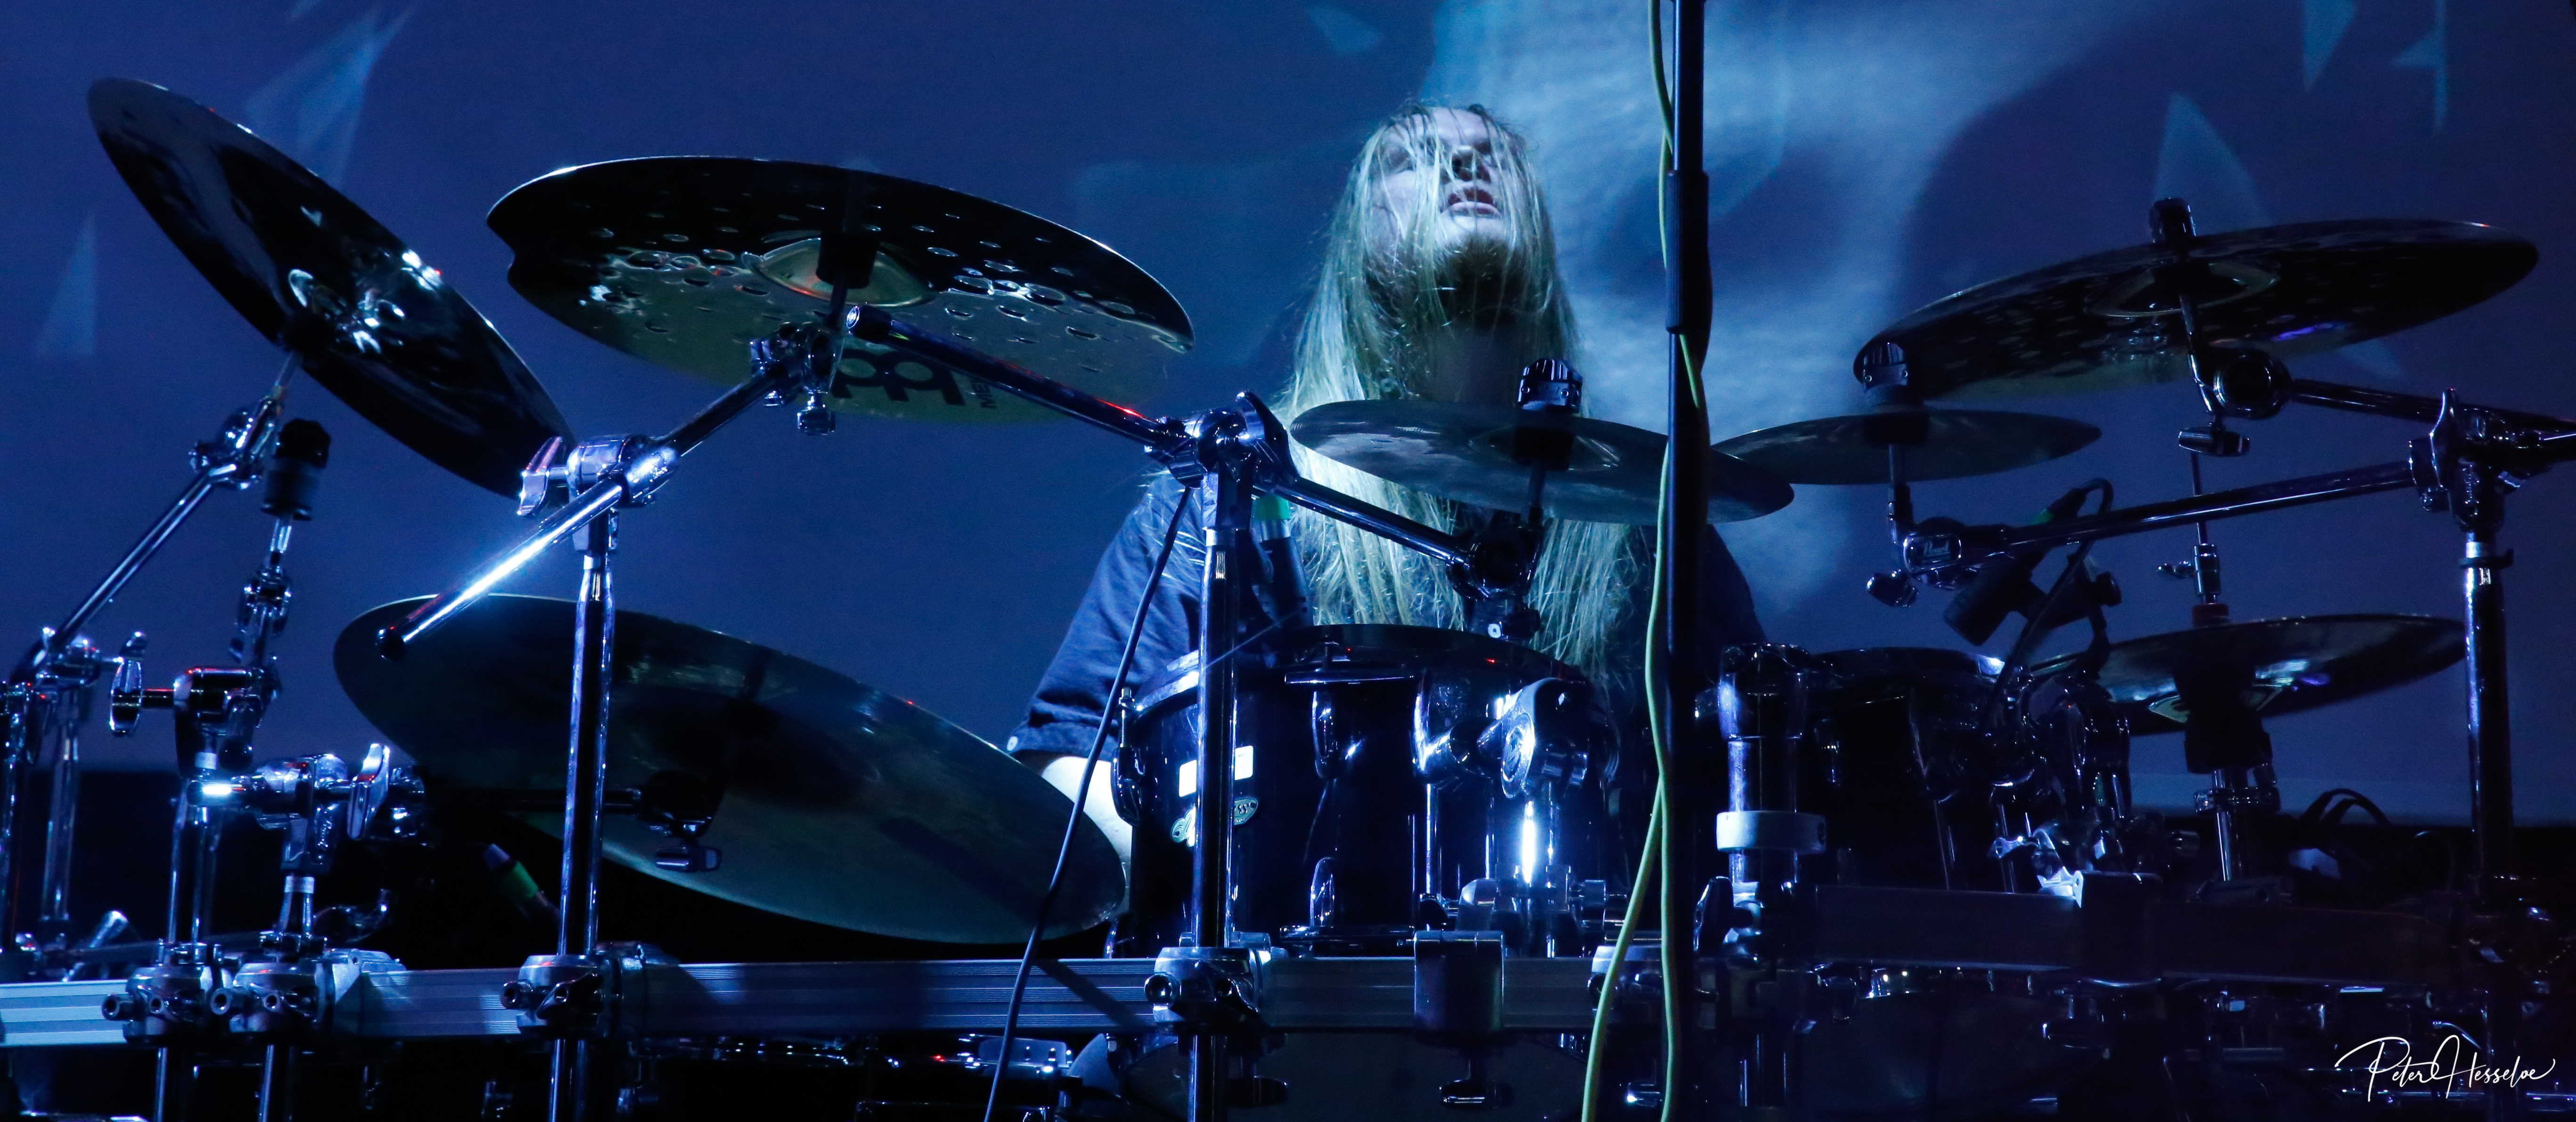 Ethereal Kingdoms live with Finntroll. Jon Elmquist drummer behind drumset.